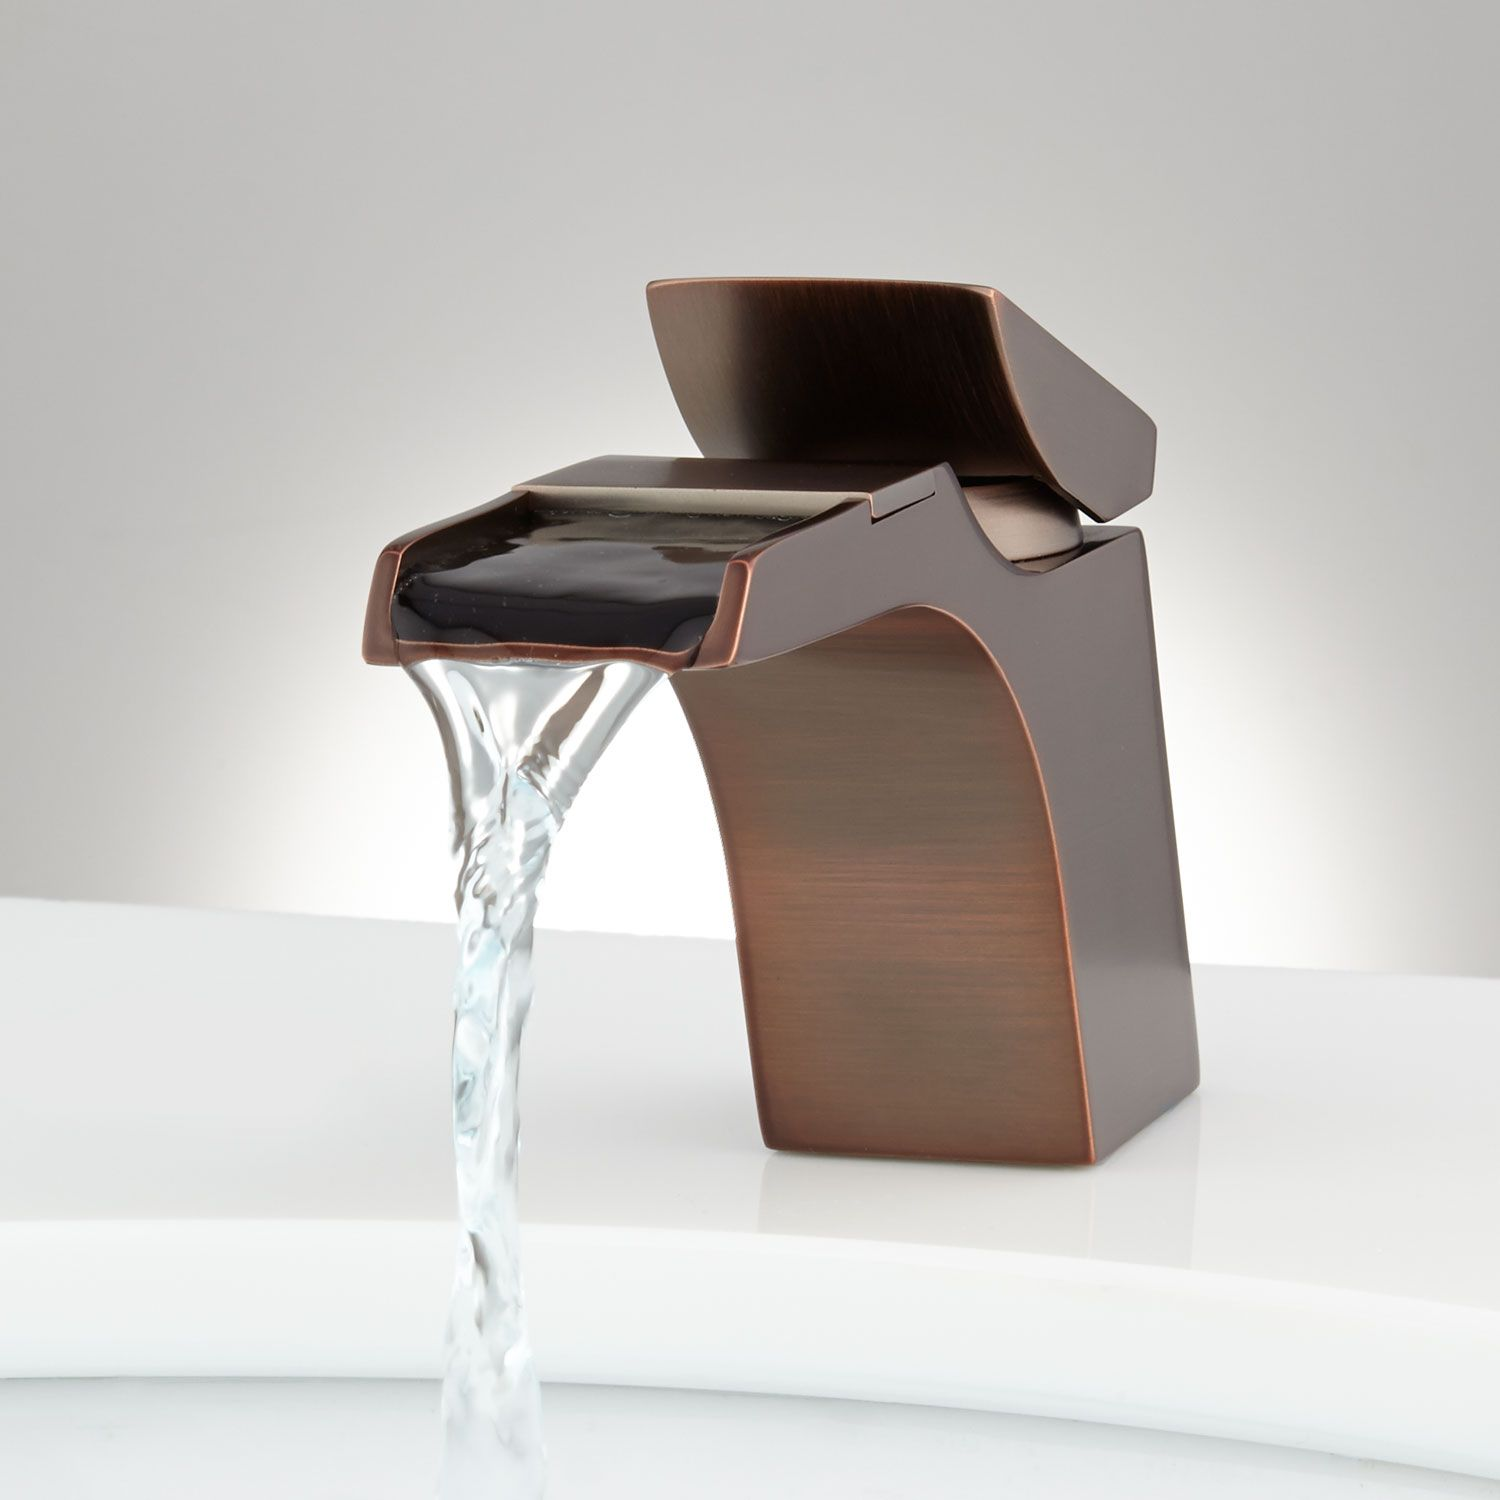 Broeg Single Hole Waterfall Faucet | Waterfall faucet, Oil rubbed ...